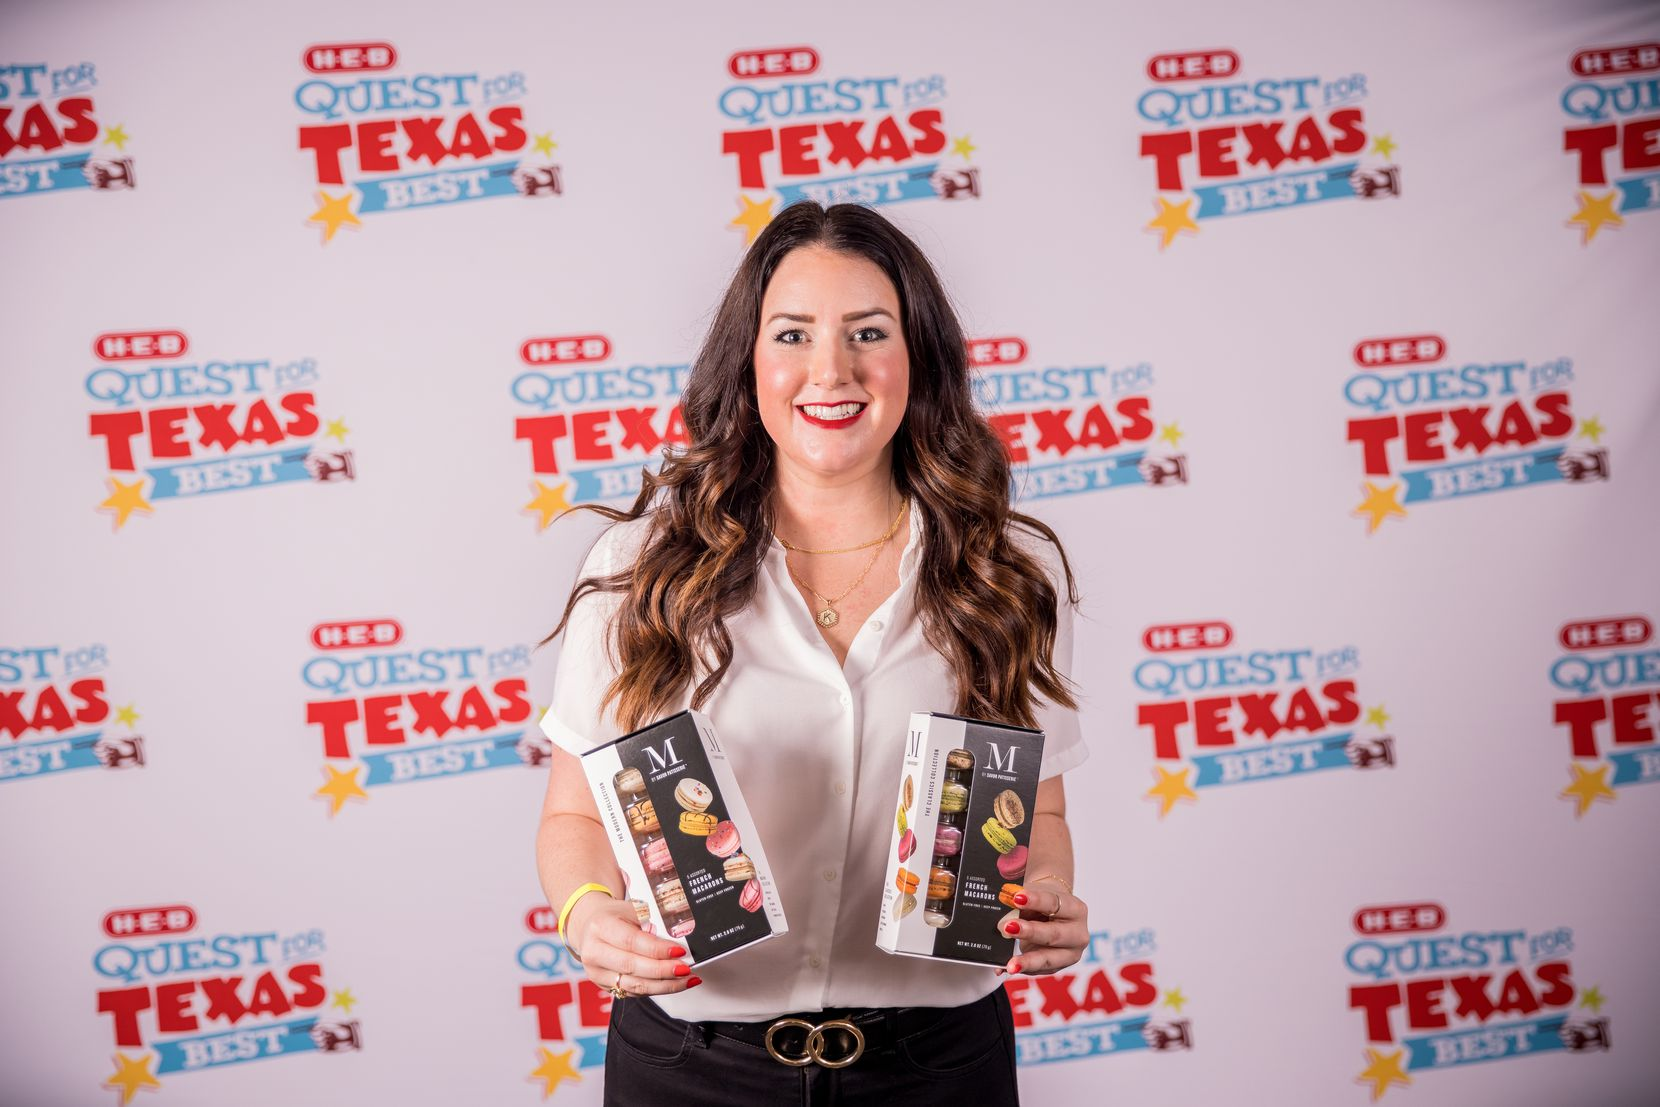 Kelli Watts of Dallas is the grand prize winner in the 2021 H-E-B Quest for Texas Best competition for her Savor Patisserie French macarons. Watts receives $25,000 and shelf space in H-E-B supermarkets.